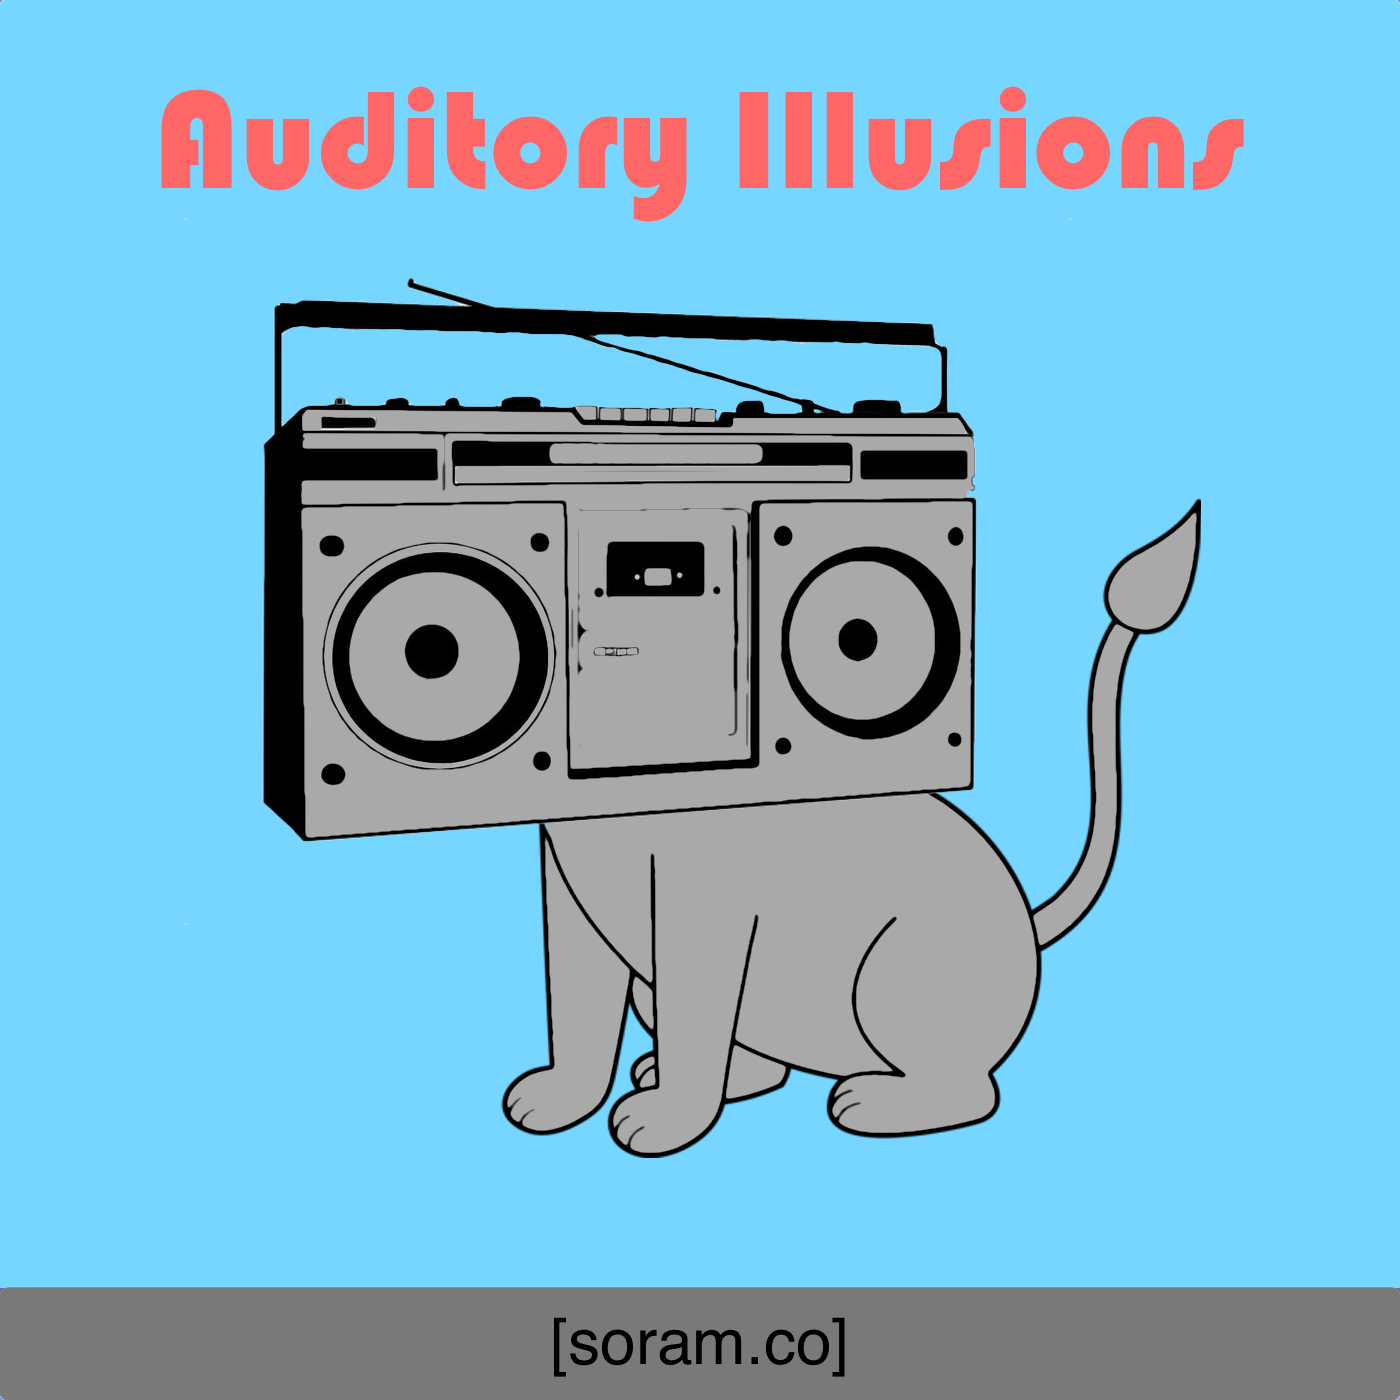 Auditory Illusions